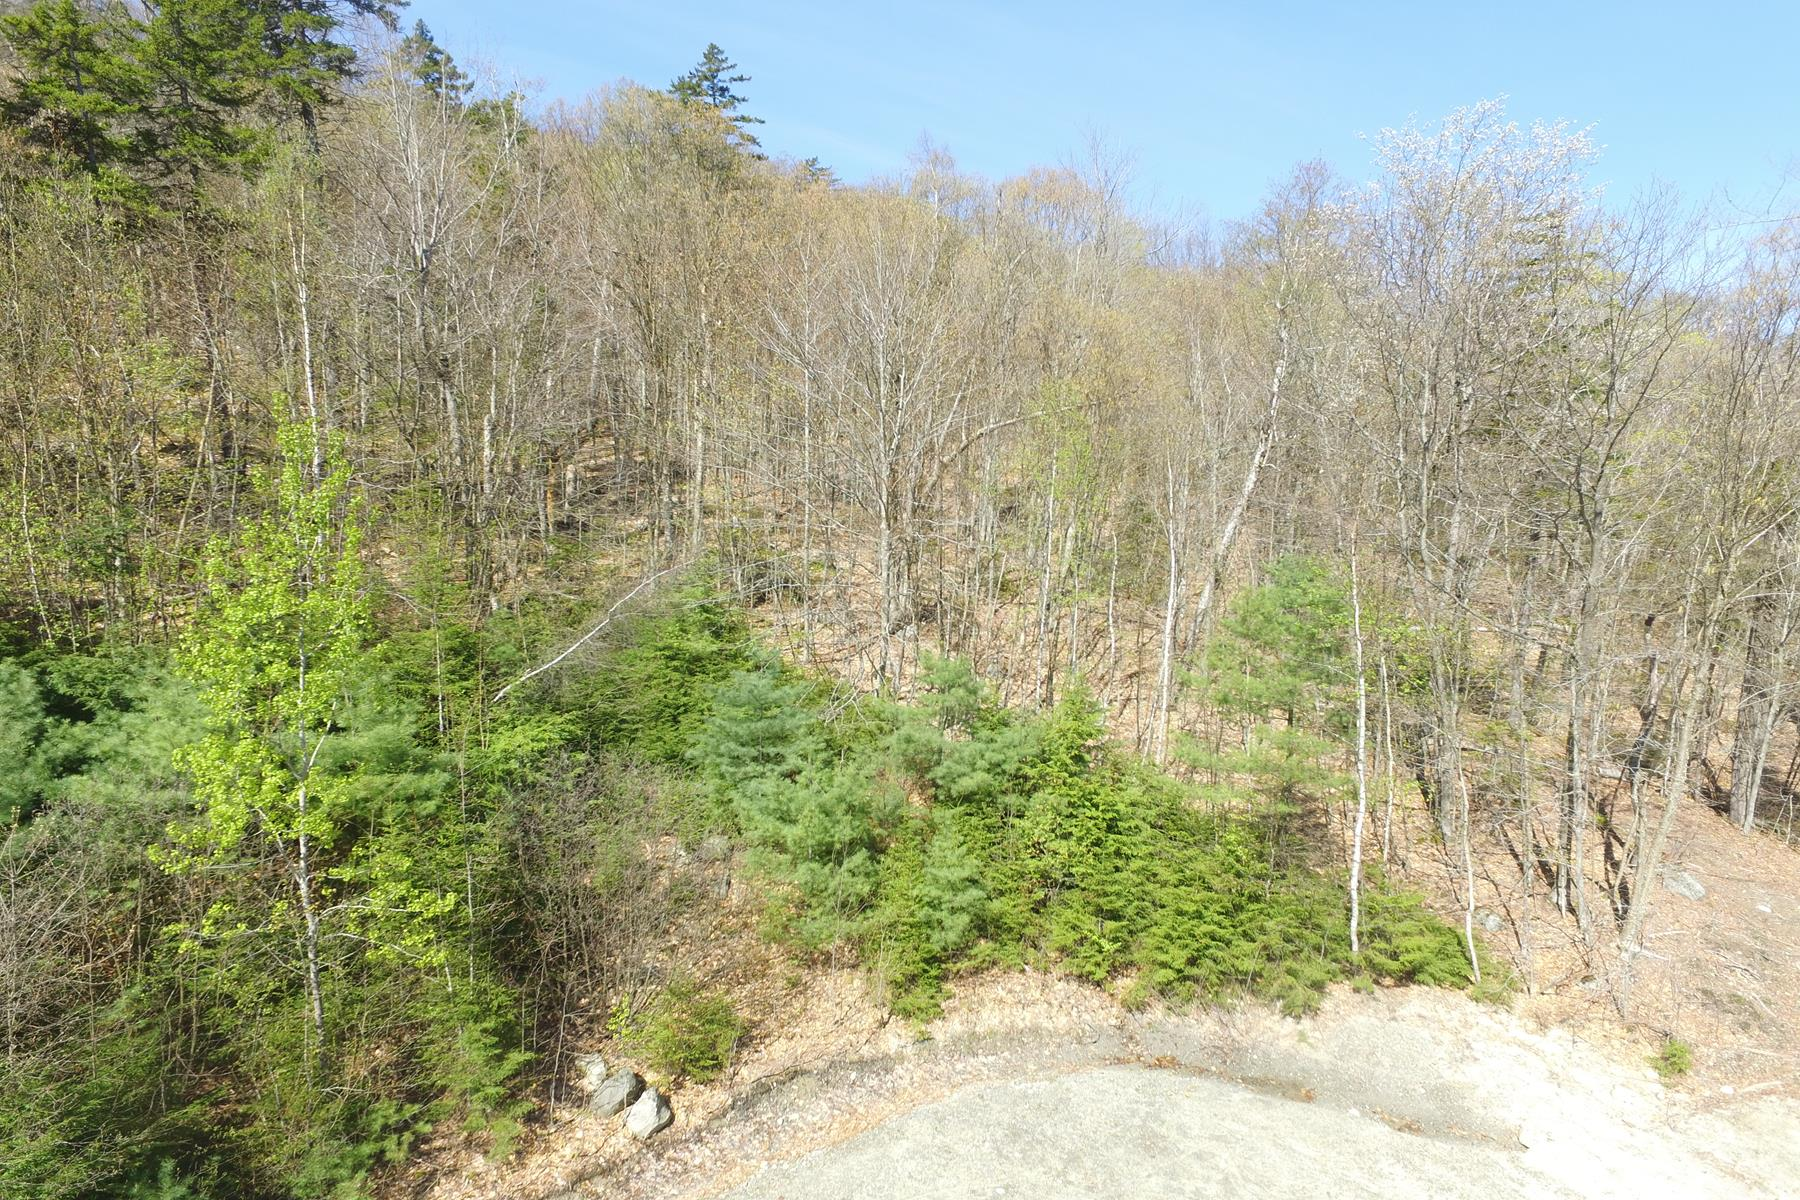 Land for Sale at 52 Skytop, Newbury Newbury, New Hampshire, 03255 United States